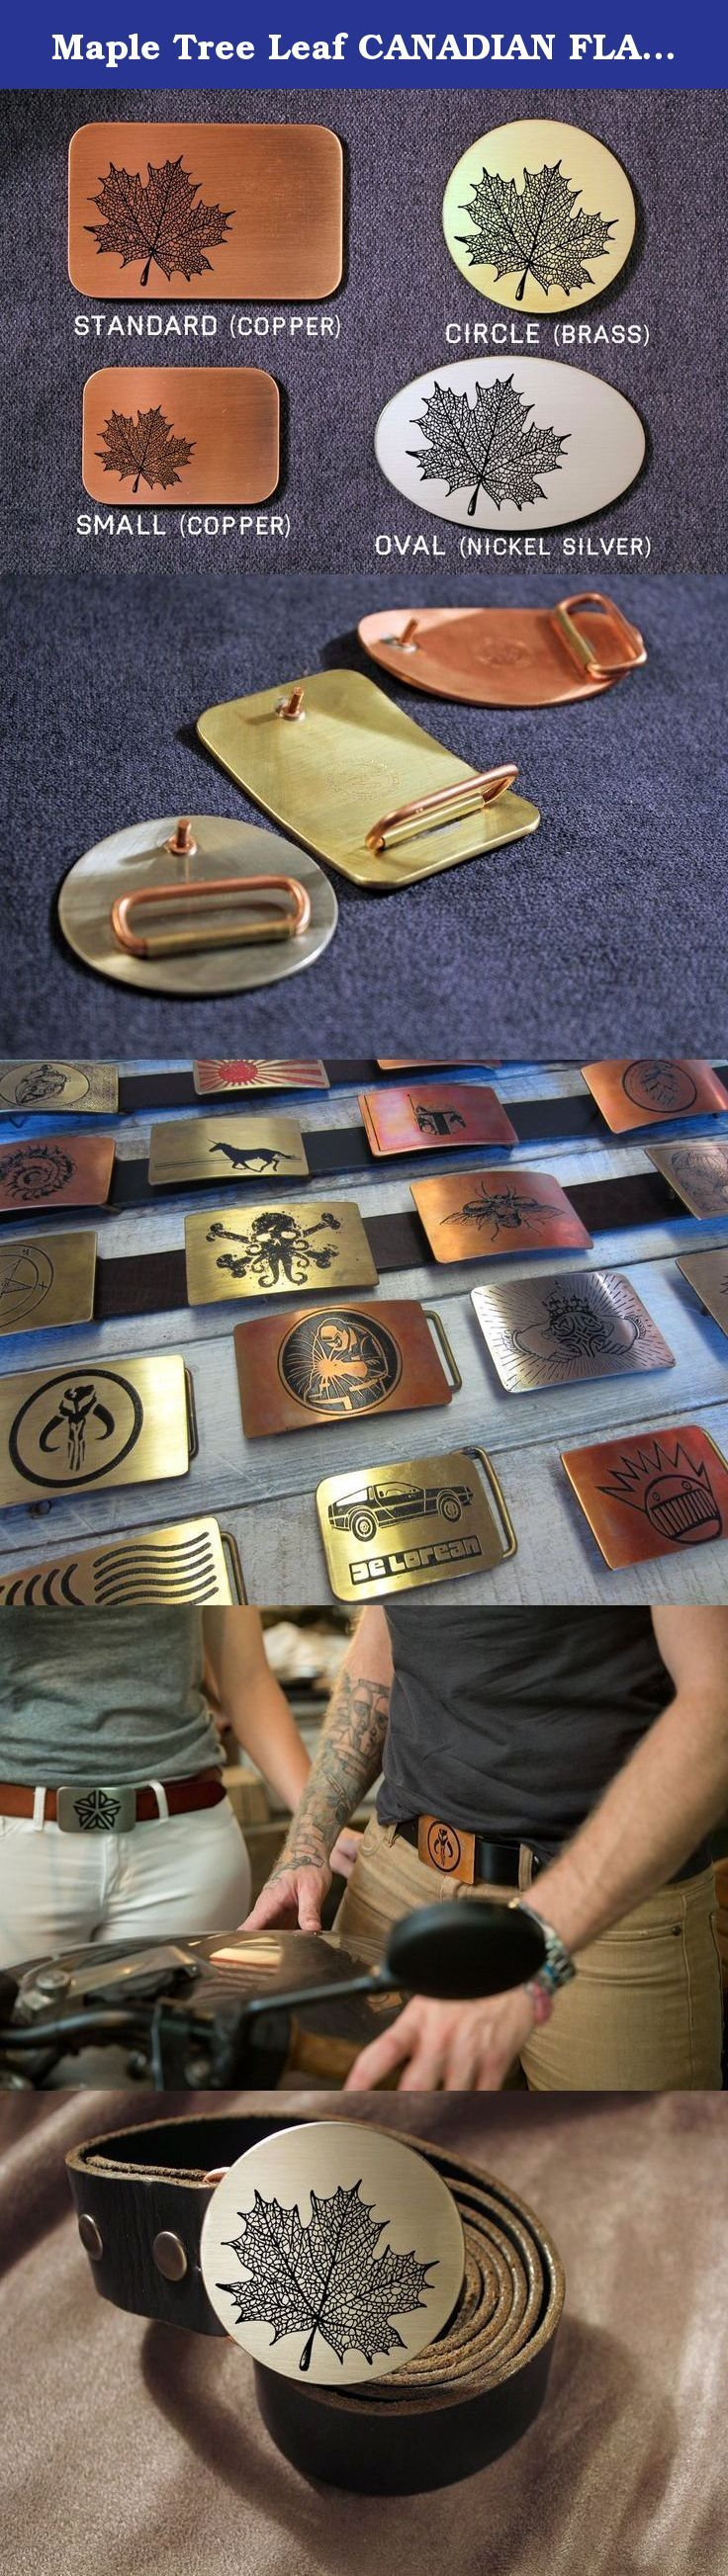 Maple Tree Leaf CANADIAN FLAG Etched Metal Belt Buckle. Etched belt buckles made out of your choice of thick copper, brass, or nickel silver that are rugged enough to last well beyond your lifetime and to become an heirloom in your family. Though our belt buckles are rough-and-tumble and built to last, yours will look right at home perched on top of a pair of crisp slacks or those beat up old farm jeans that your wife keeps telling you to chuck in the trash. Every belt buckle is made to...